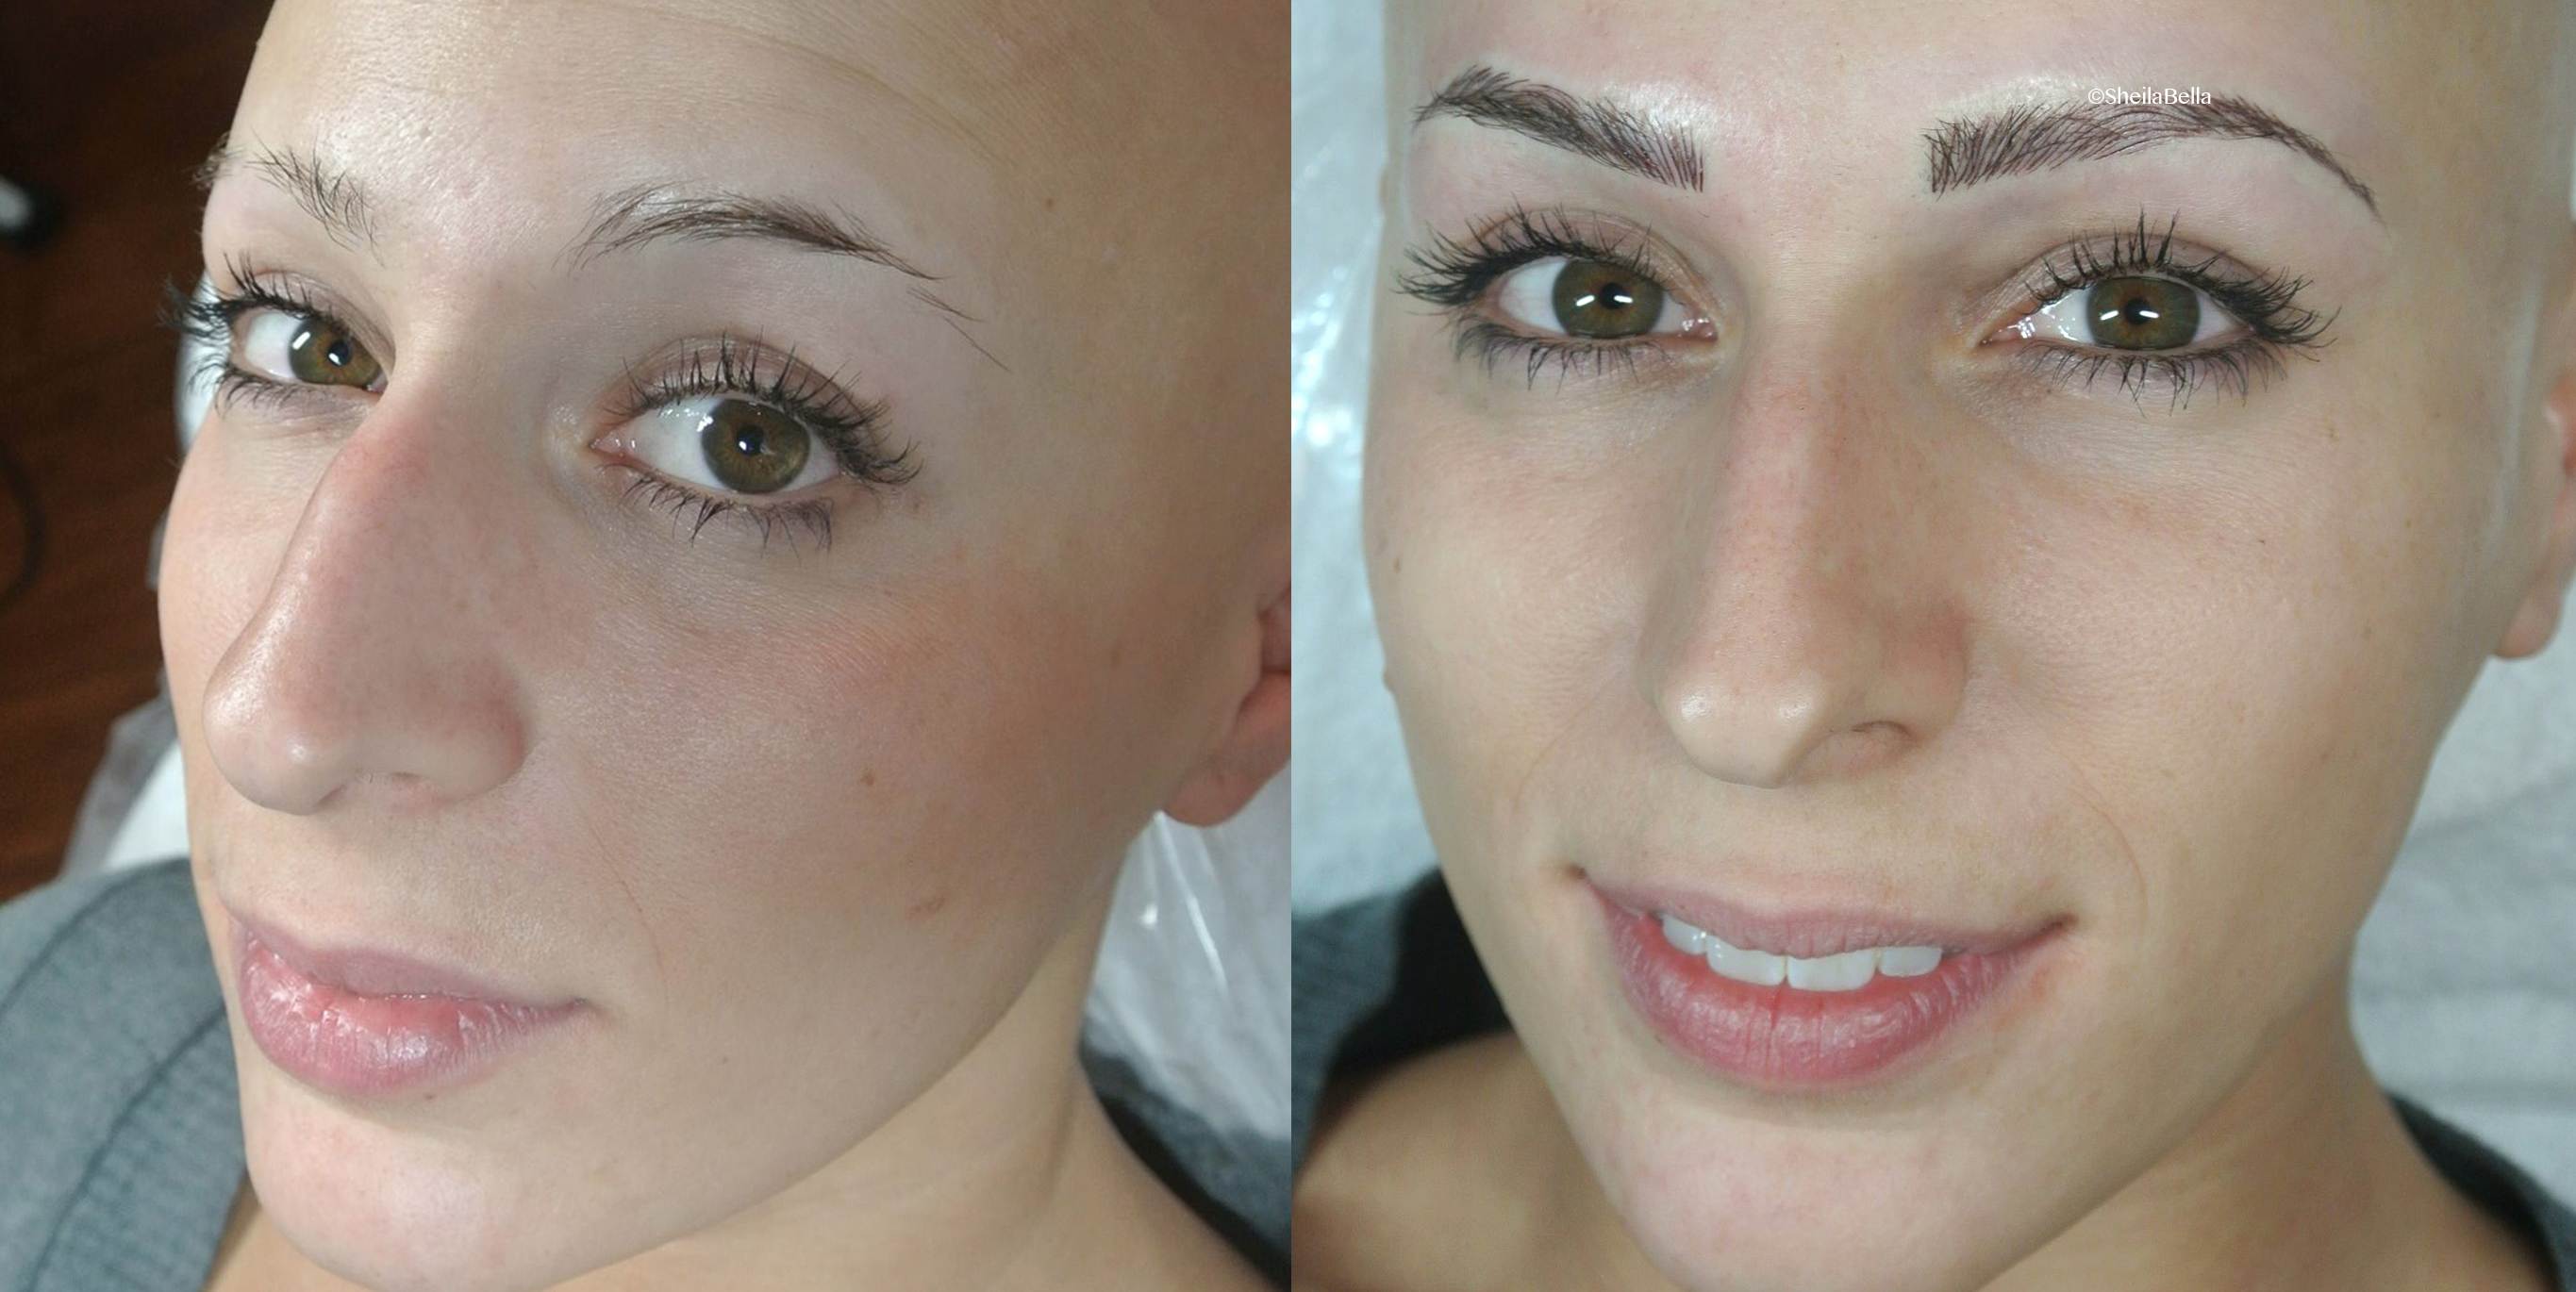 alopecia Permanent Makeup Eyebrow hair stroke technique